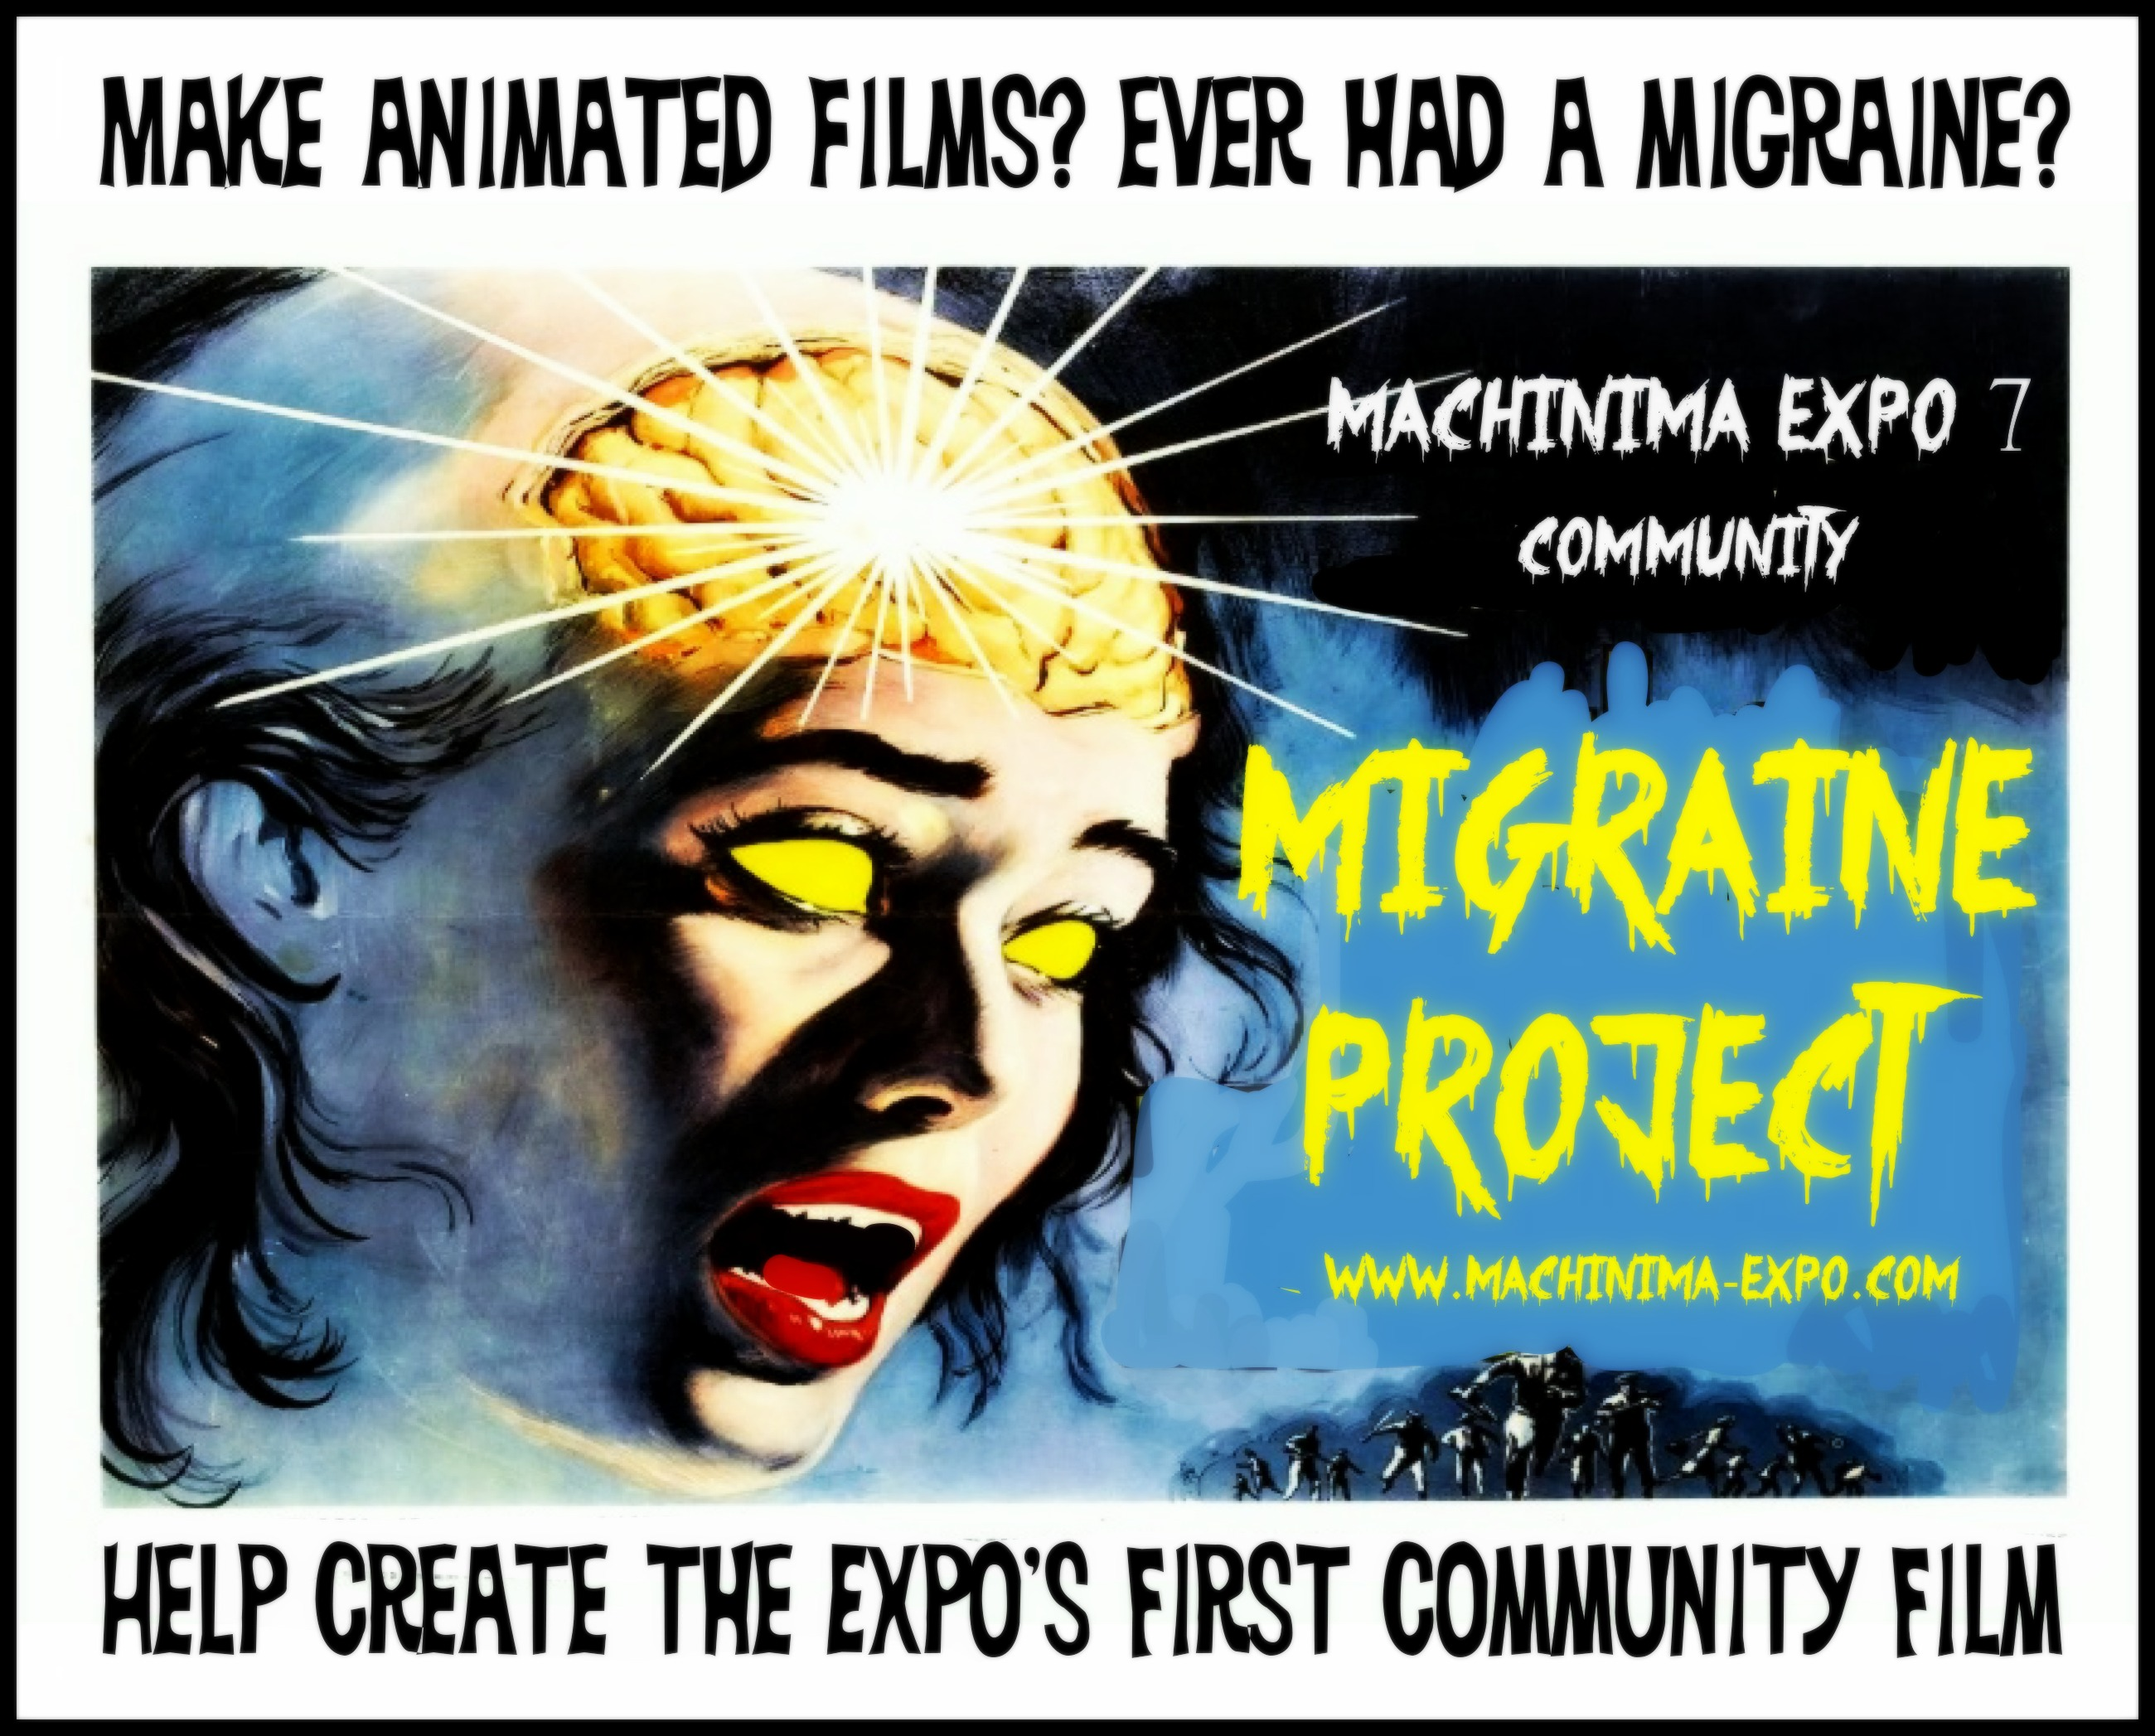 Contribute to the First Annual Community Film  Project at the Expo 7